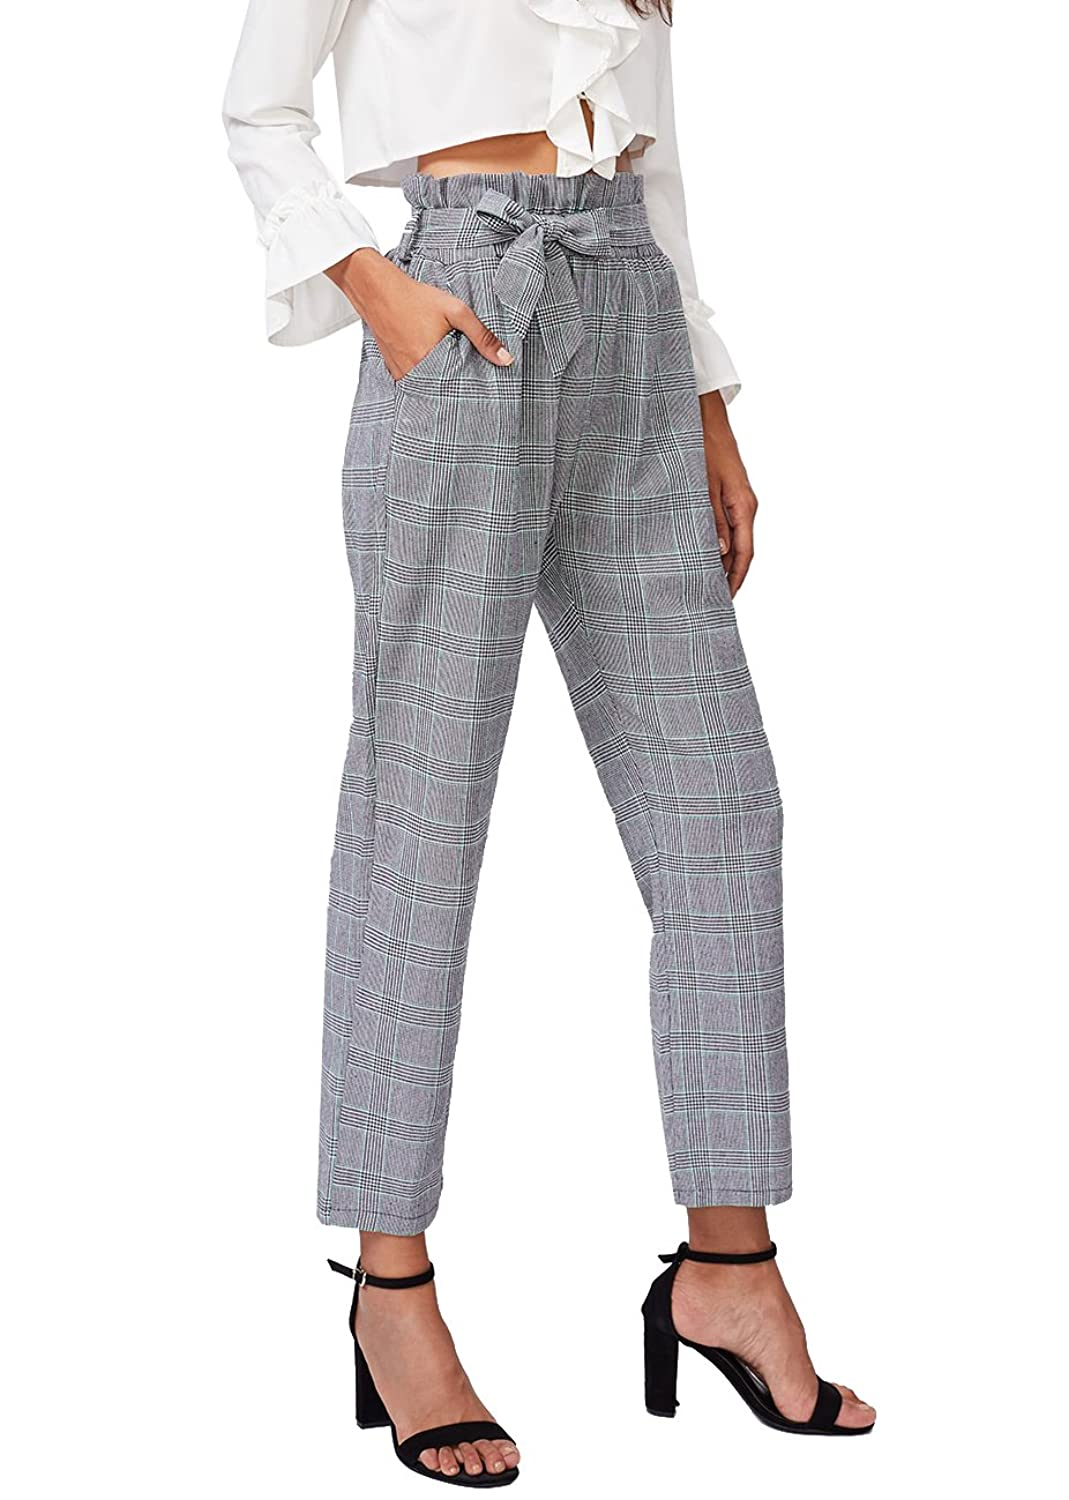 She In Women's Ruffle Tie Waist Pants With Pockets by She In